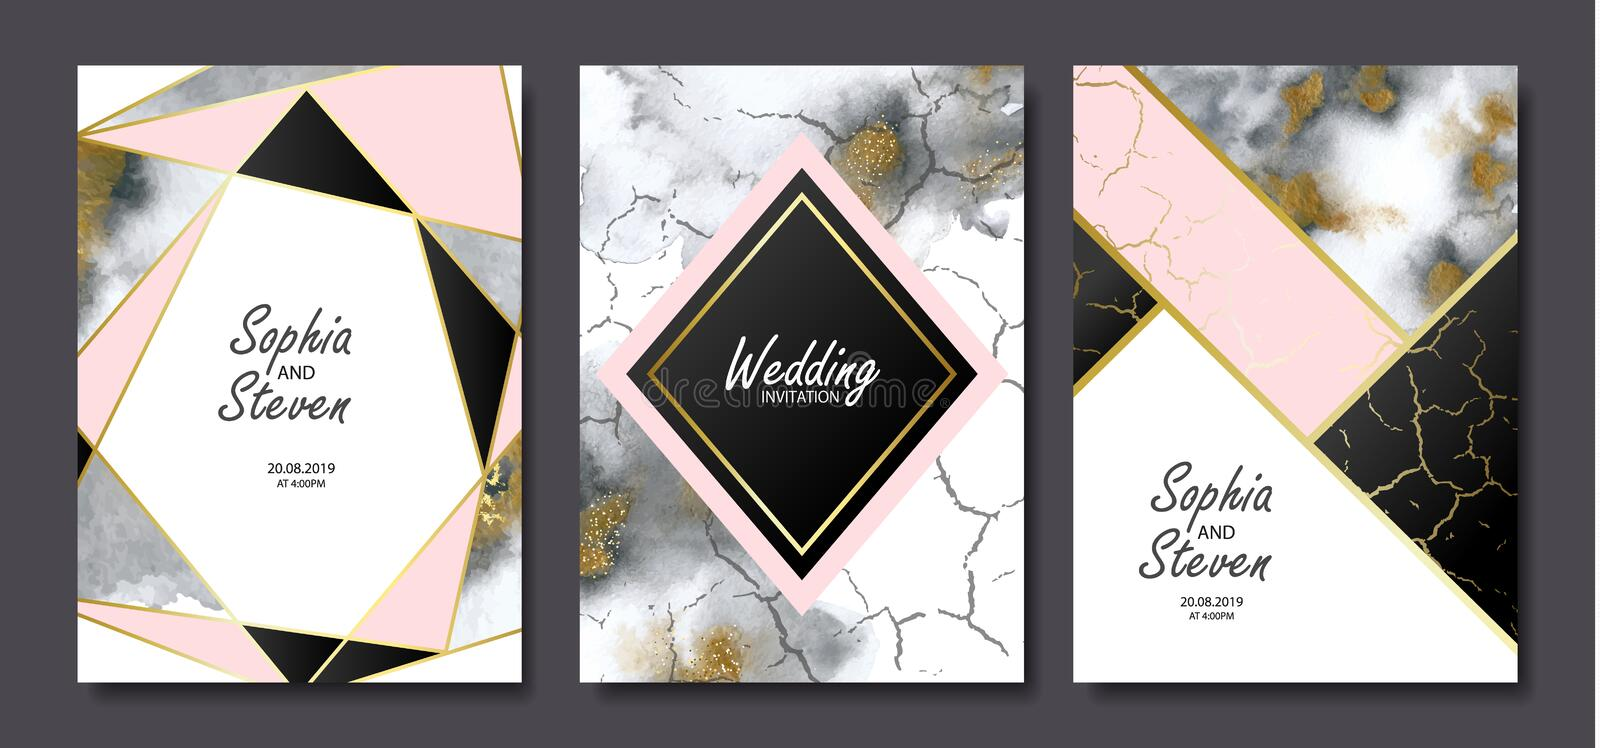 Wedding invitation cards with gold and grey marble watercolor texture and geometric shapes.Vector illustration. vector illustration